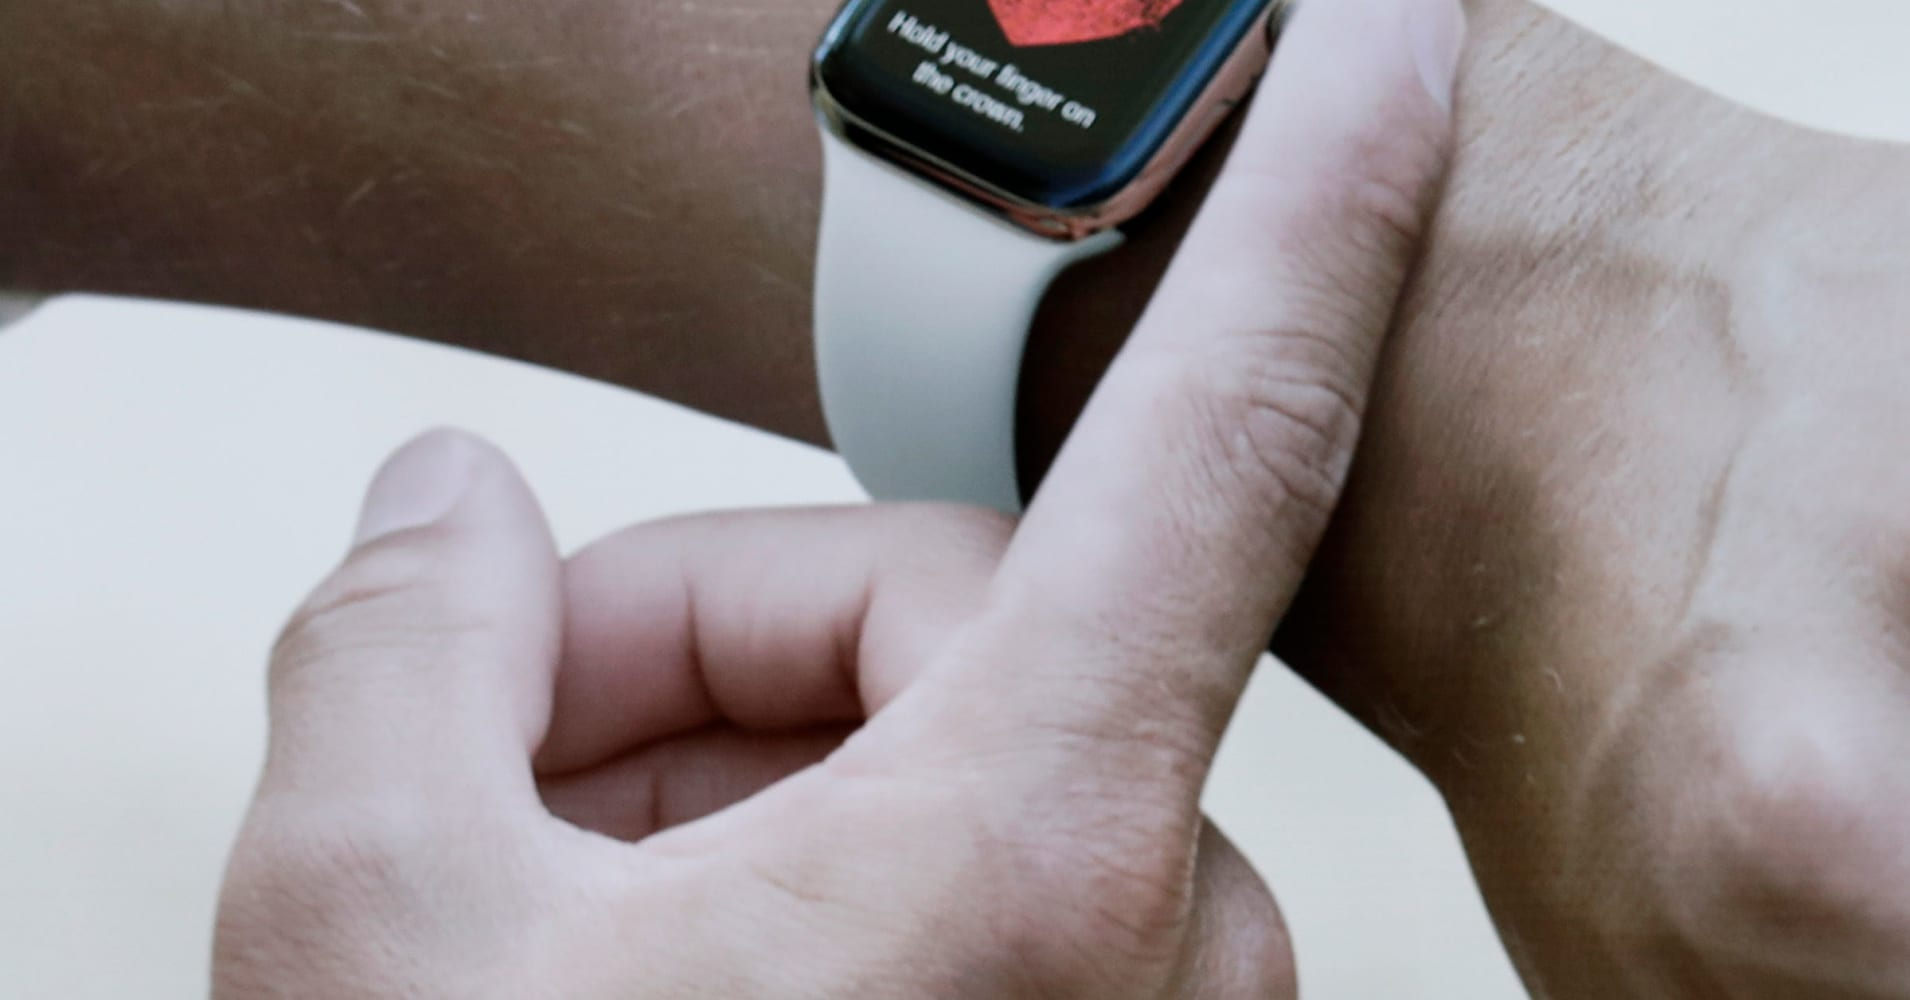 Apple in talks to subsidize Watch for at-risk seniors